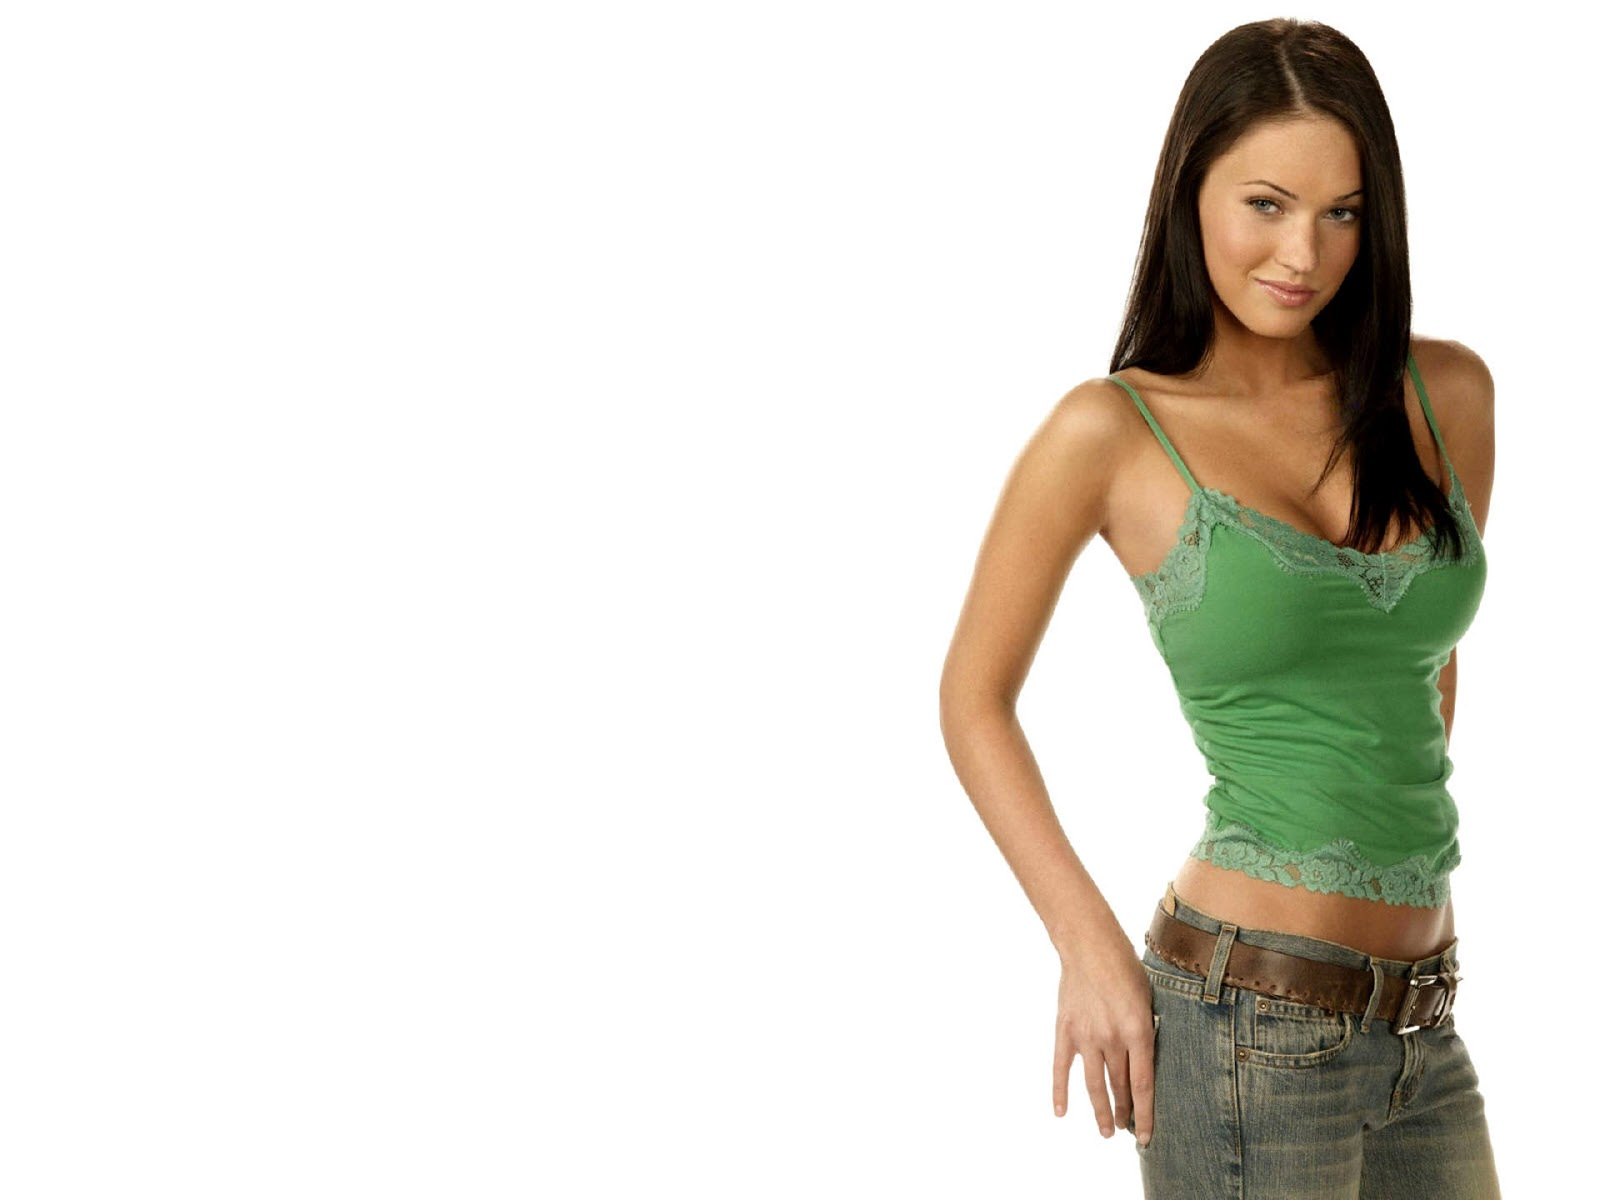 http://3.bp.blogspot.com/-693_CiX6_NU/UNWAED13NVI/AAAAAAAApoE/DJN8apiZEQc/s1600/Megan+Fox+-+Hot+HD+Wallpapers+0016.jpg